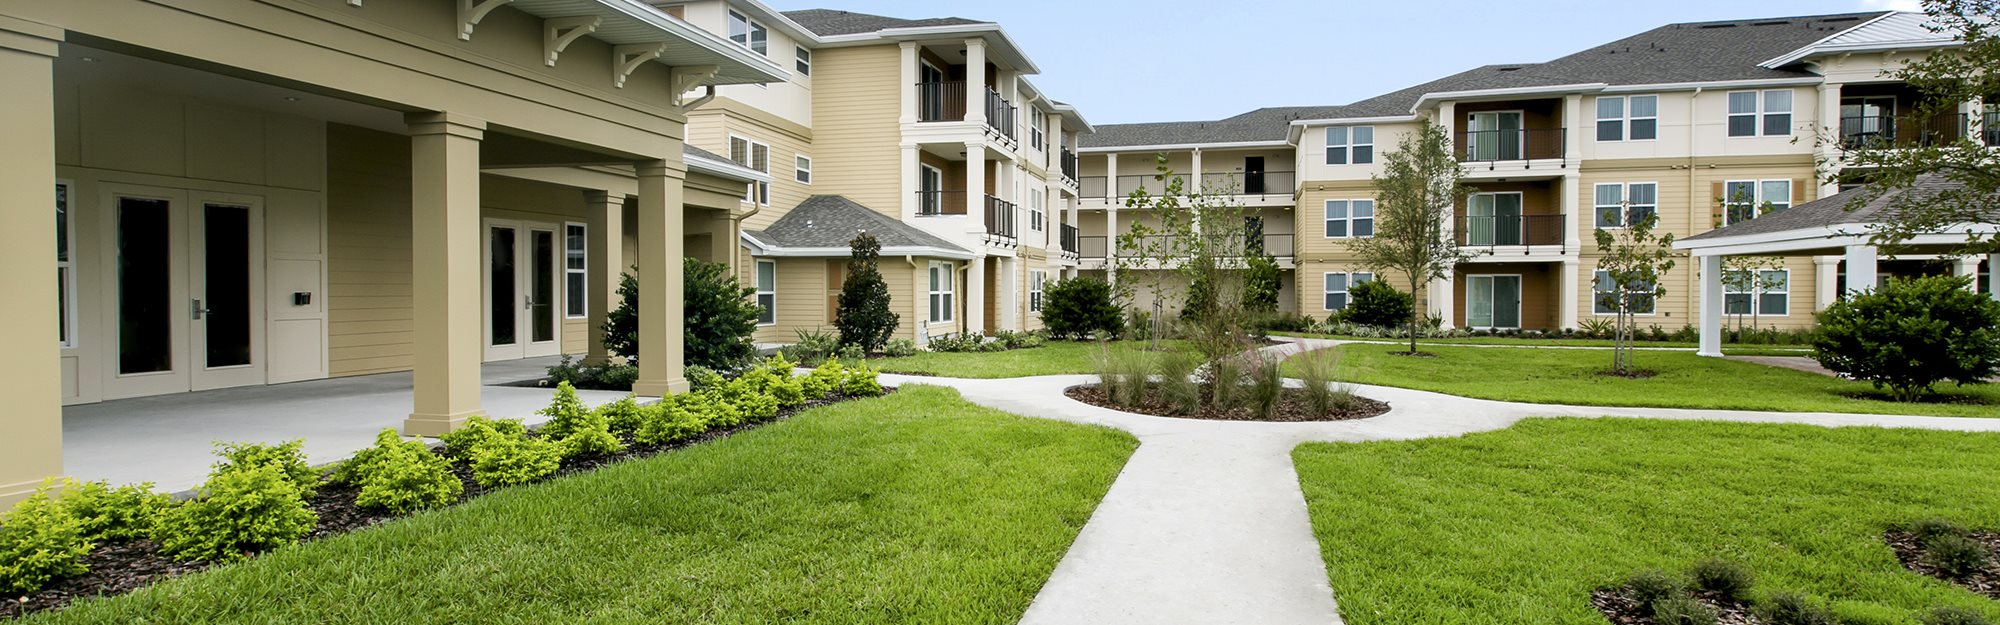 Vista Park Senior Living Apartments for rent in Brooksville, FL. Make this community your new home or visit other Concord Rents communities at ConcordRents.com. Courtyard